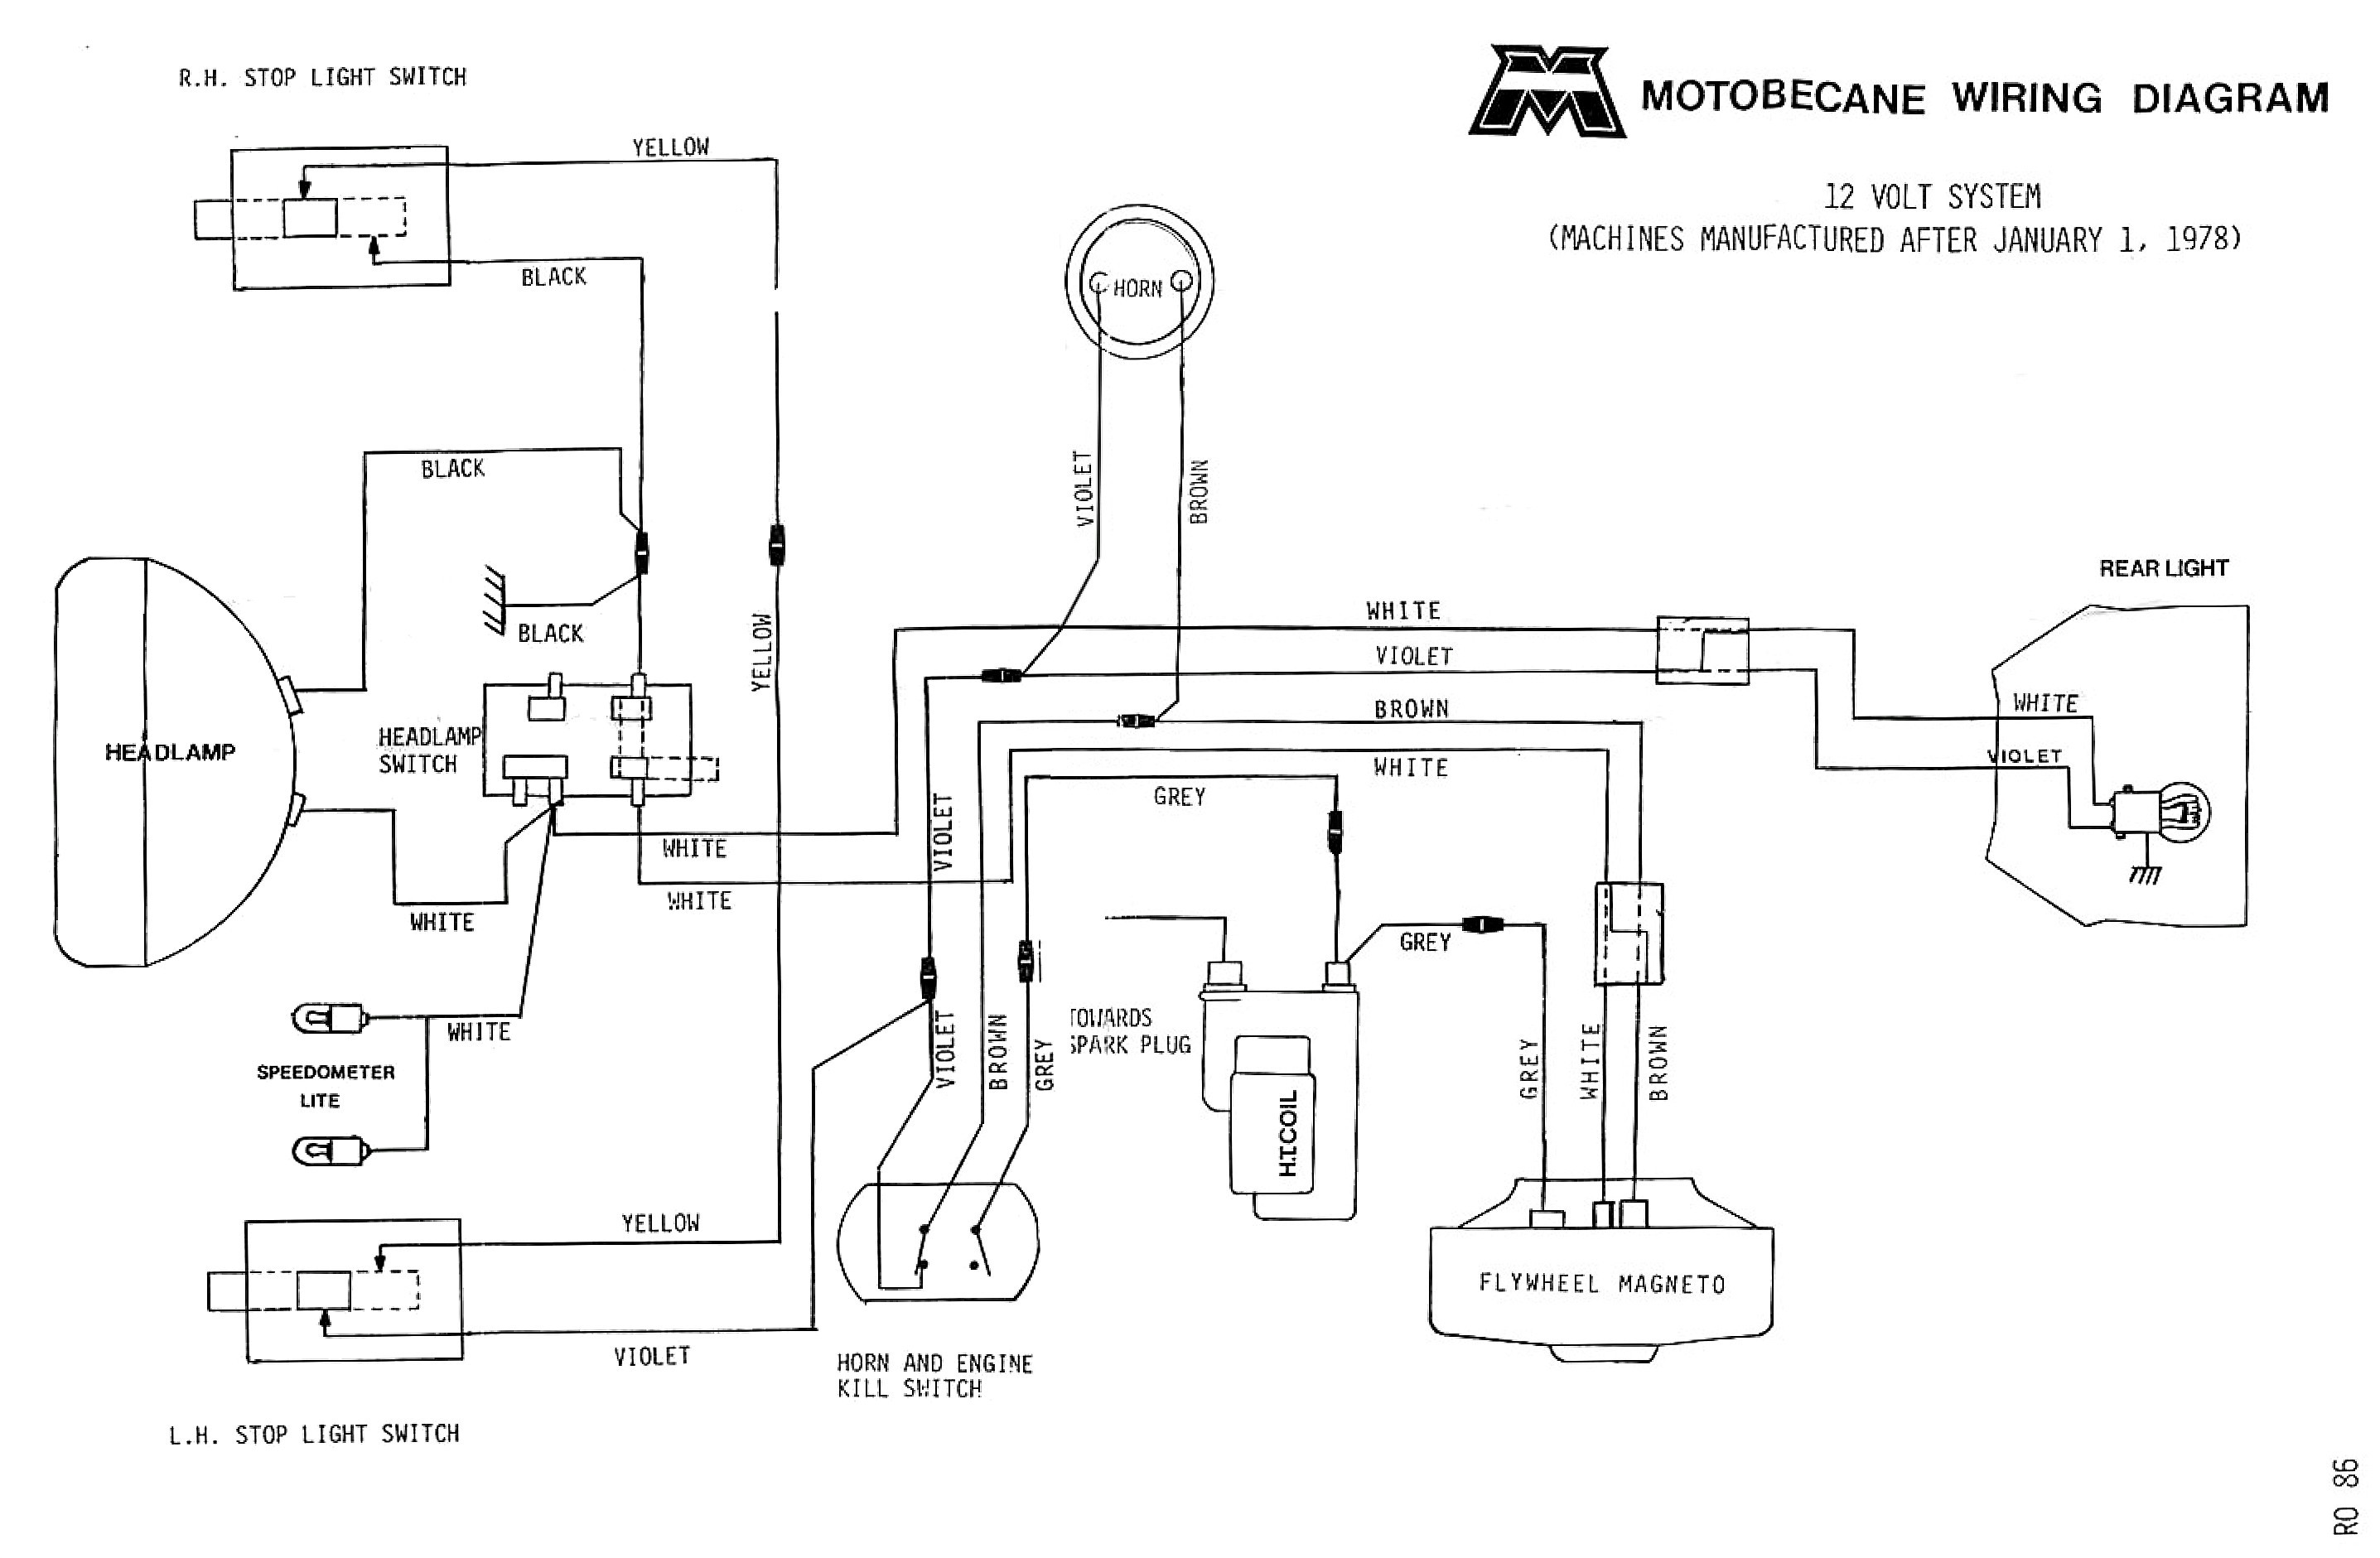 Ford New Holland 3930 Wiring Diagram - 3208 Cat Engine Wiring Diagram -  vga.yenpancane.jeanjaures37.fr | Ford New Holland Wiring Diagram |  | Wiring Diagram Resource